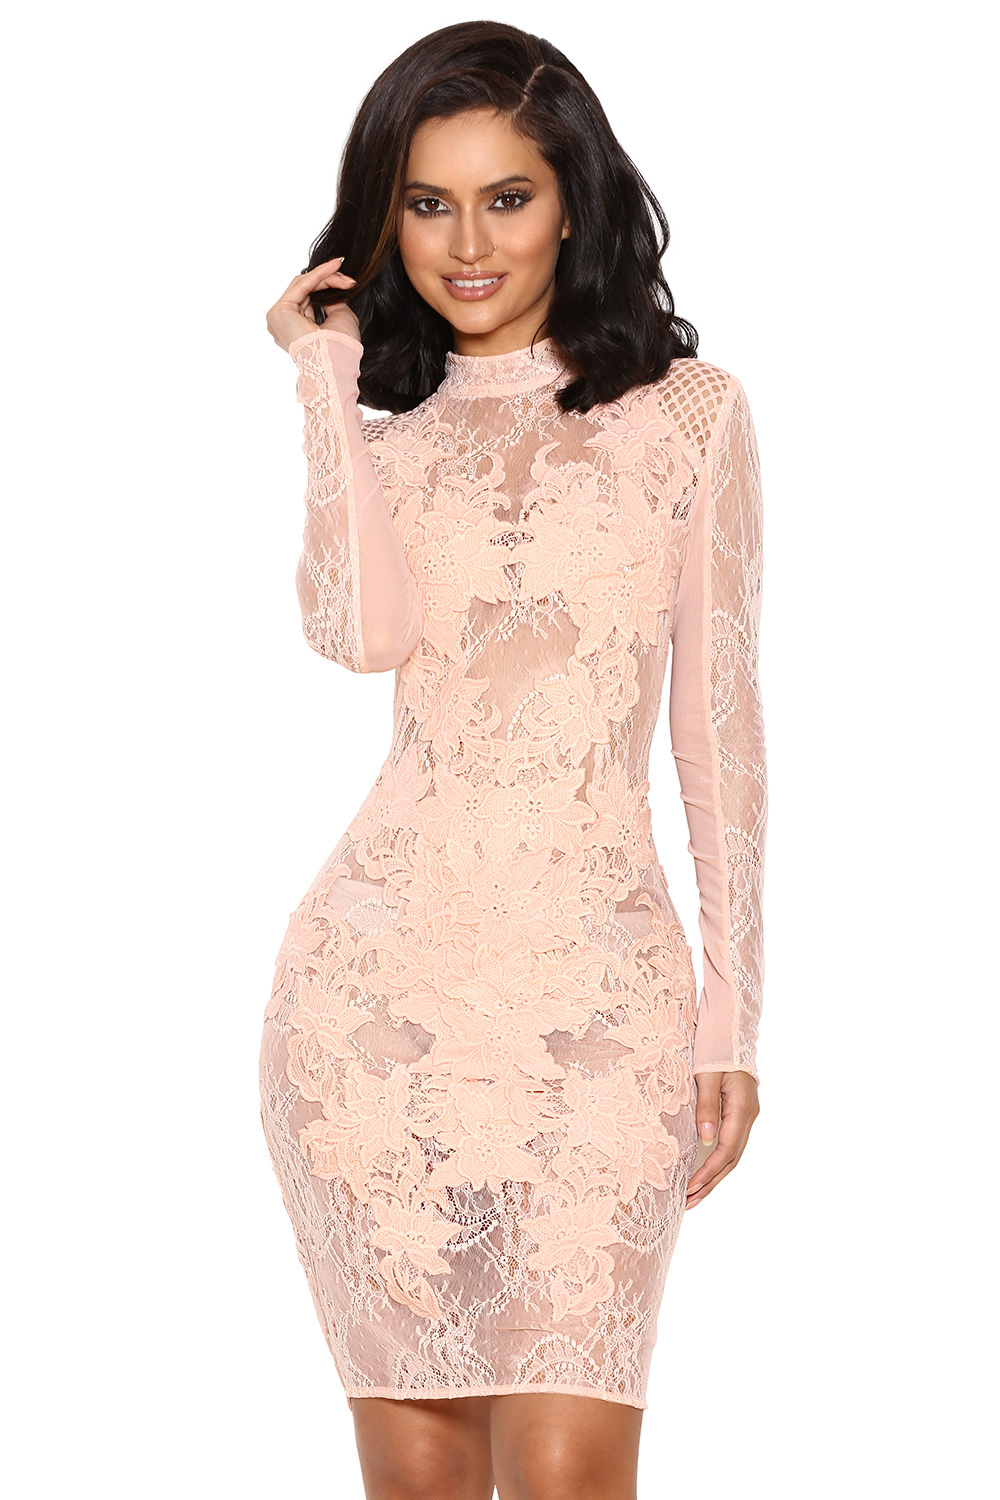 Clothing  Bodycon Dresses  u0026#39;Giallau0026#39; Peach Mesh and Lace Long Sleeved Dress